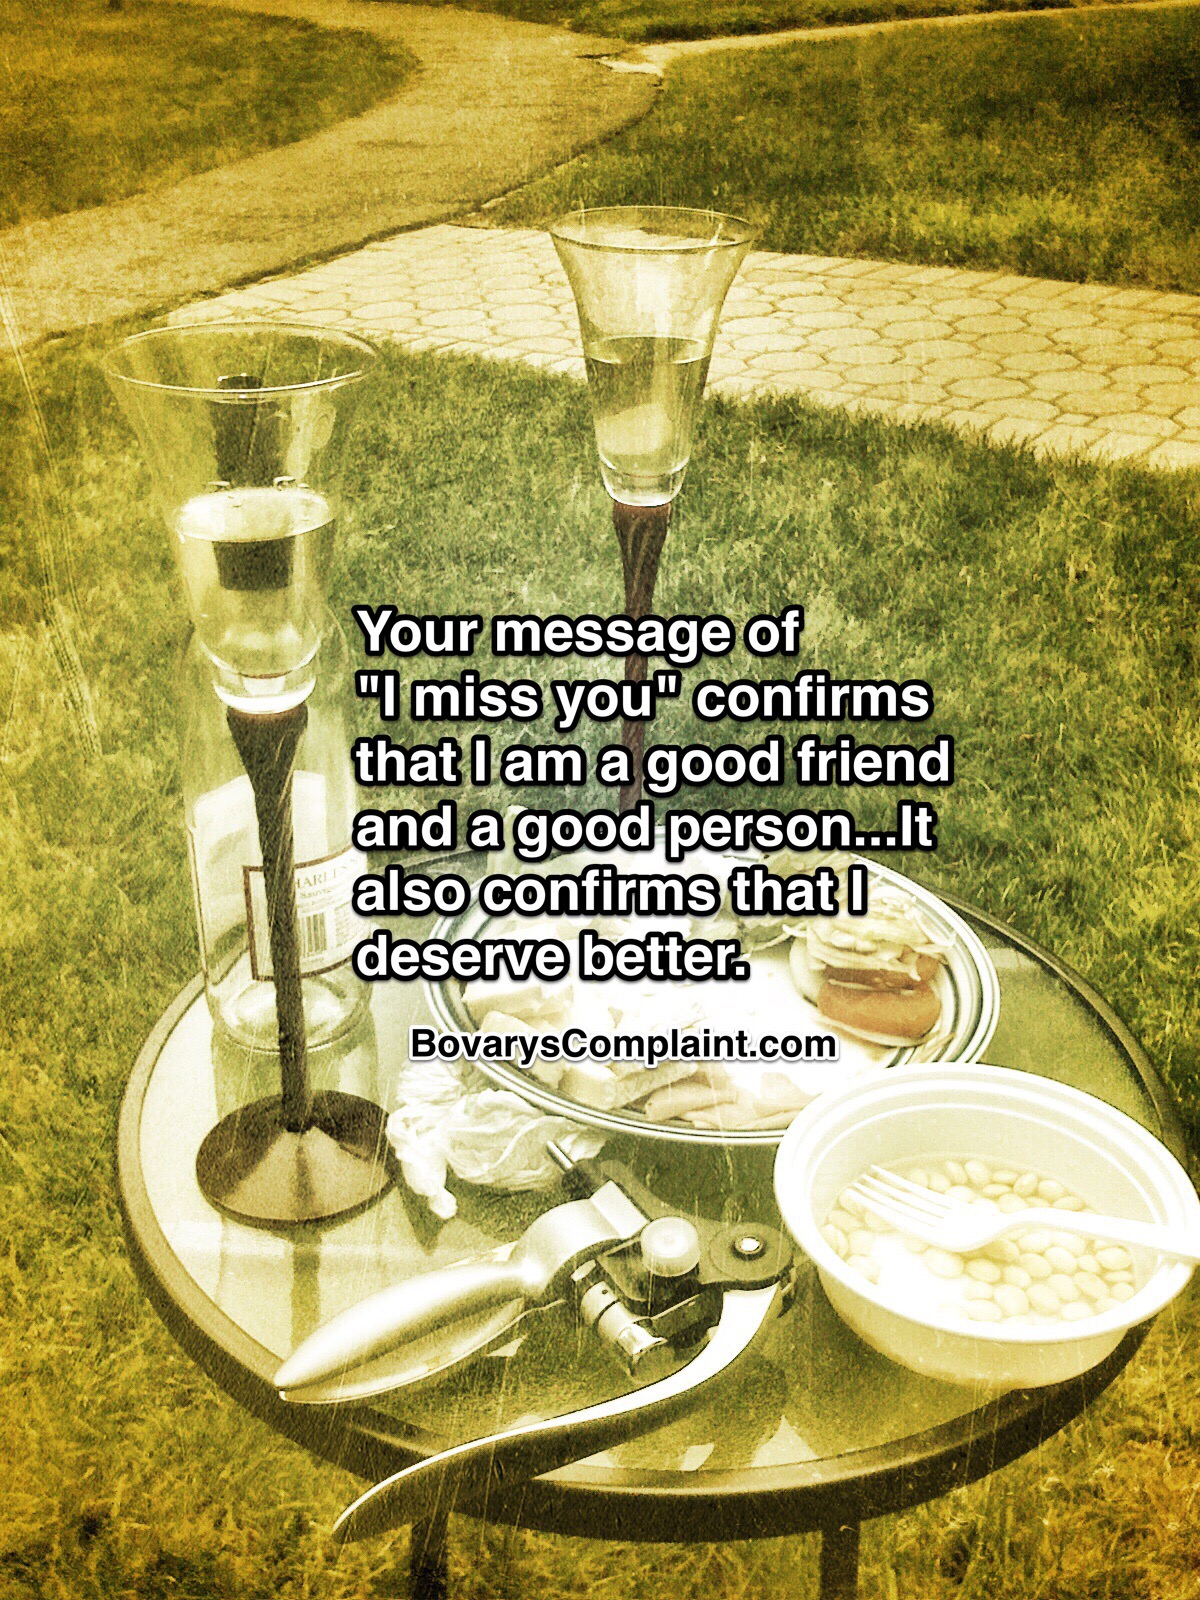 Apology quote with picture of wine glasses and food.